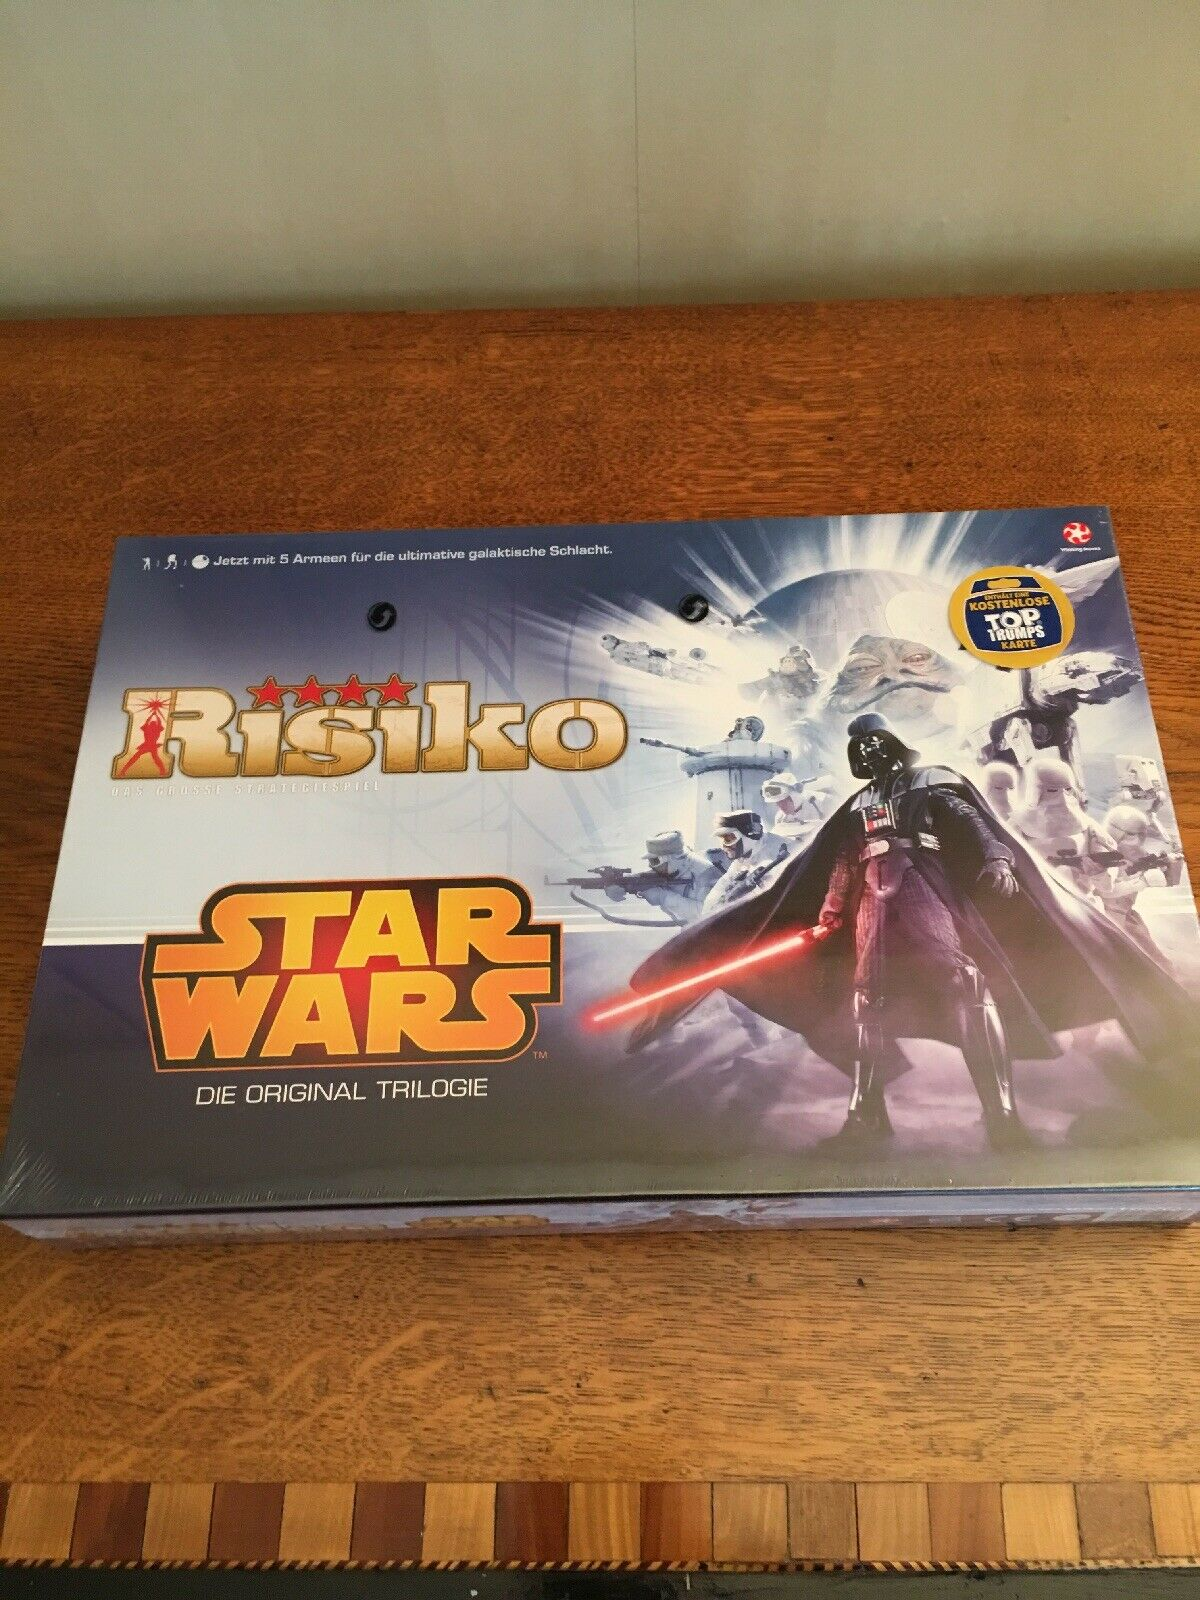 Risiko Star Wars  Die original Trilogie Neu in Folie